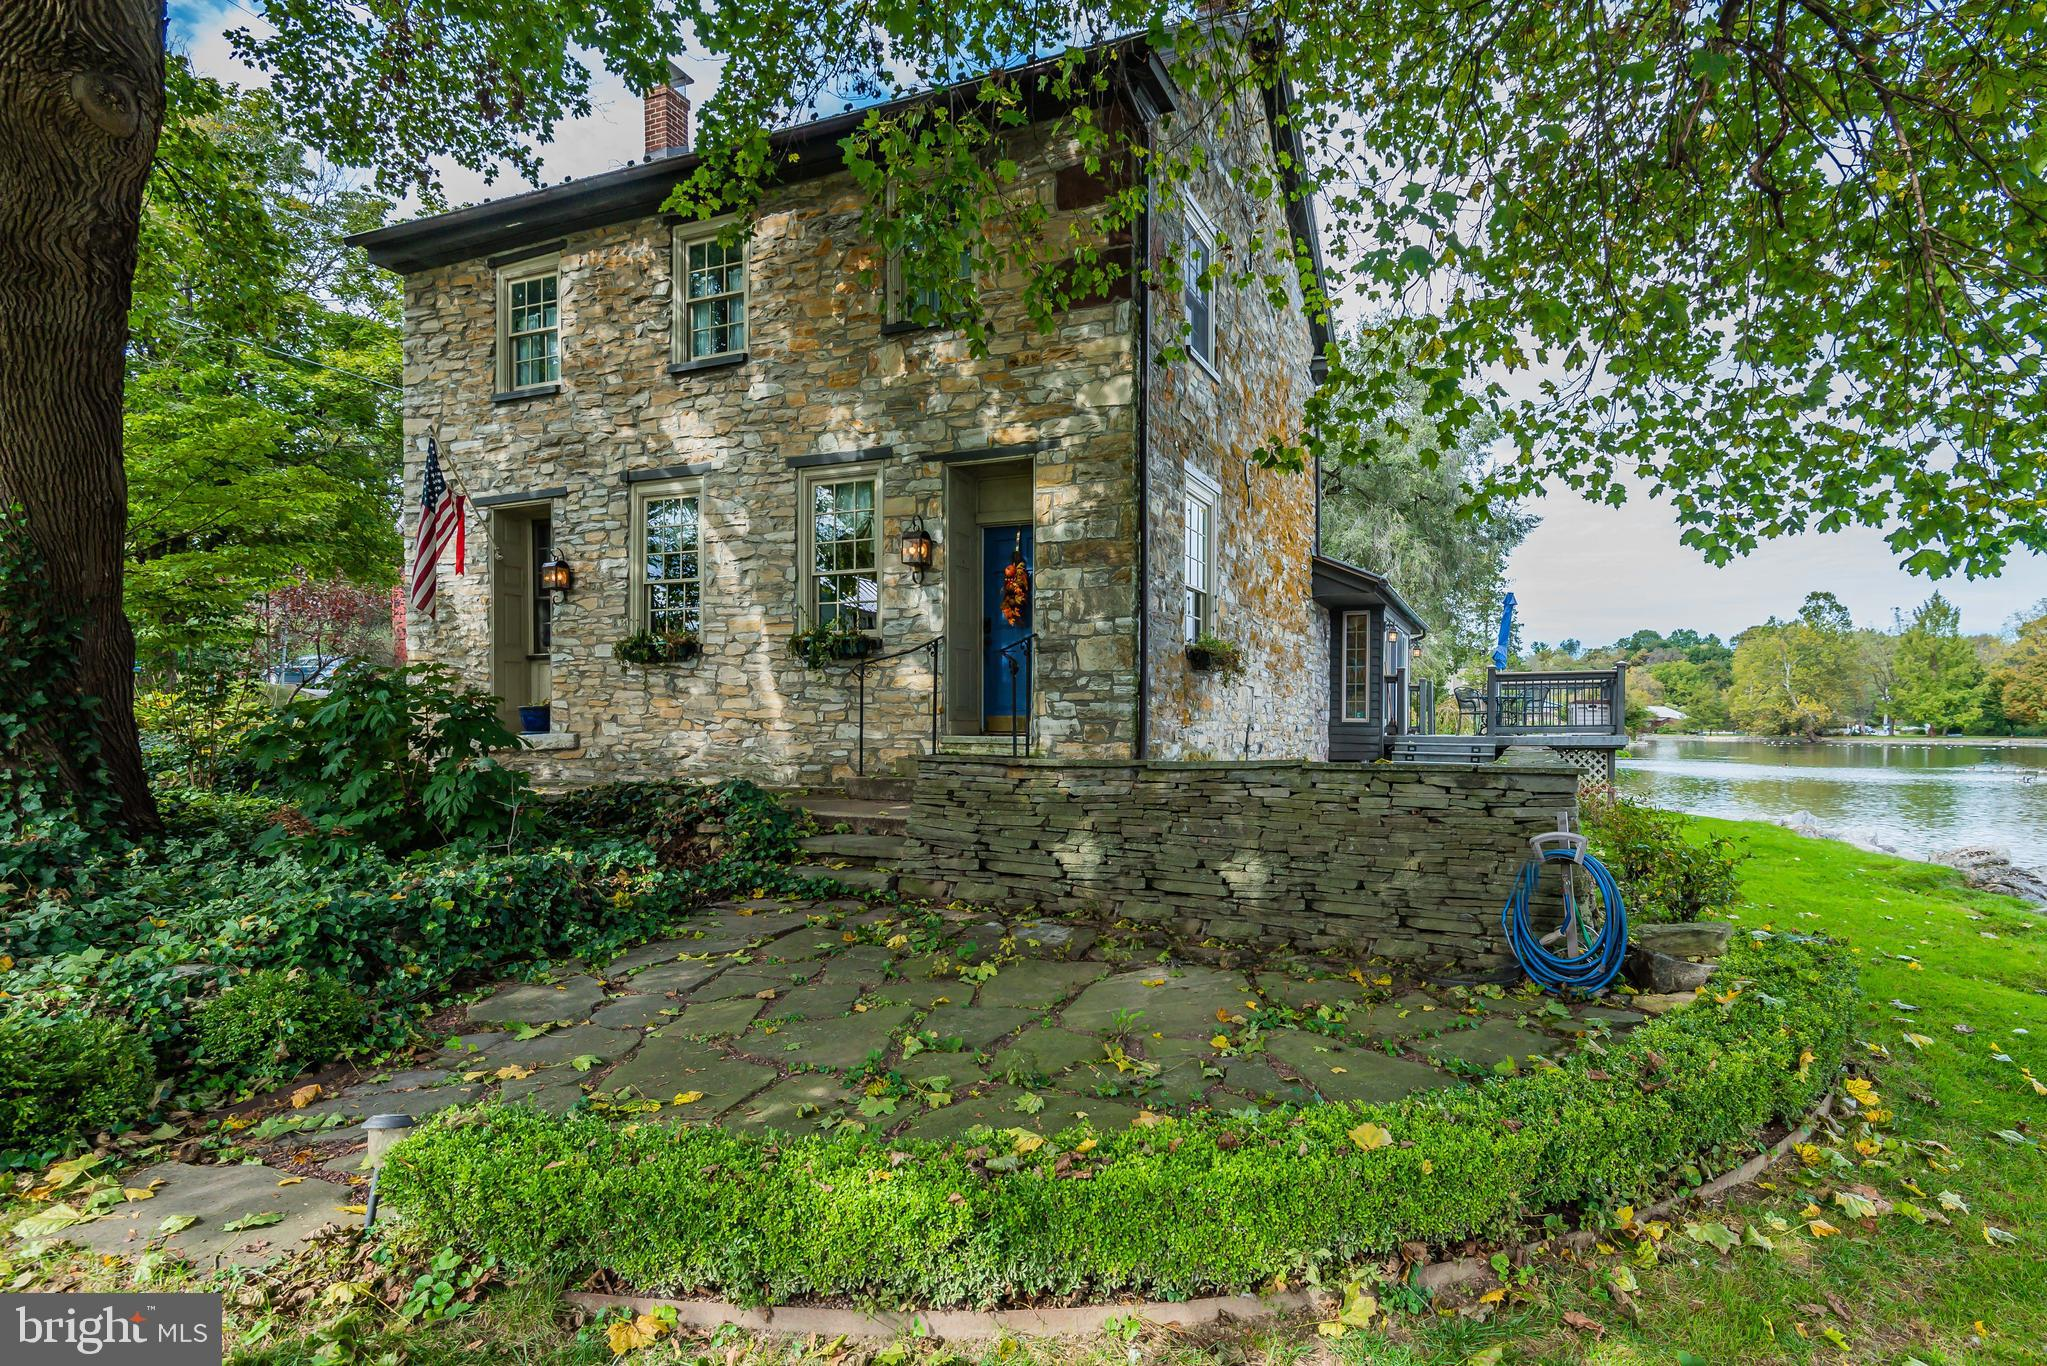 400 FRONT STREET, BOILING SPRINGS, PA 17007